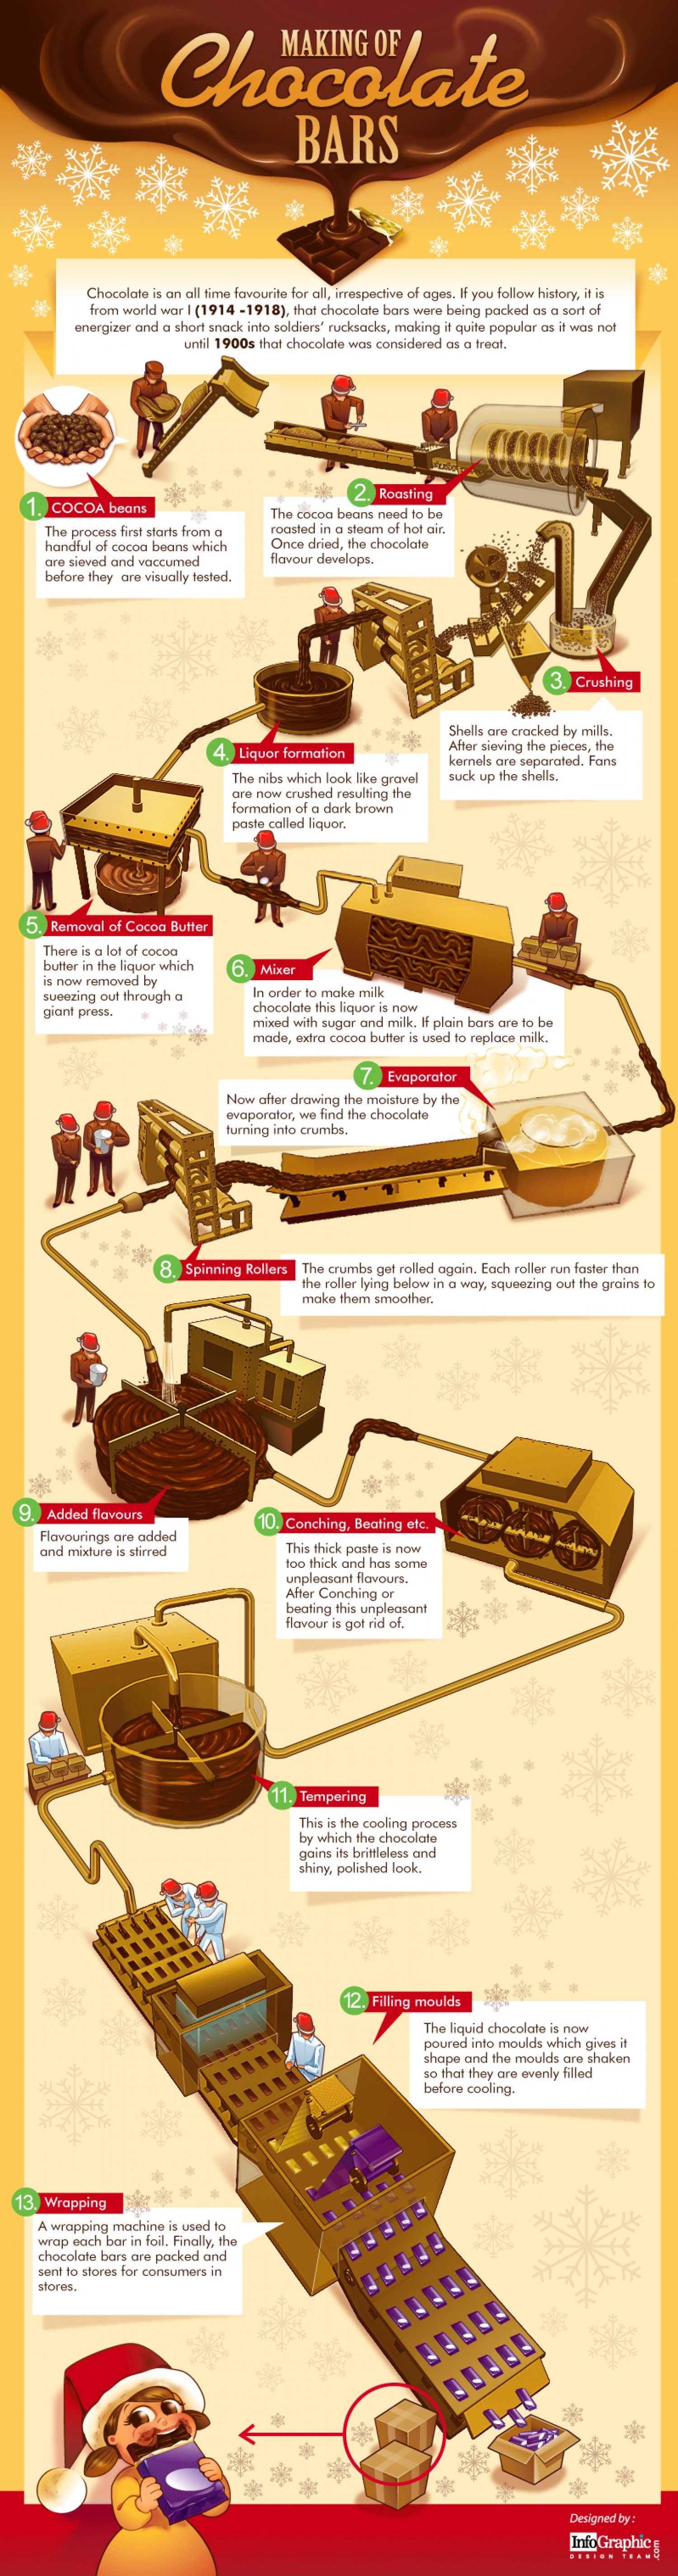 10 making-of-chocolate-bars_52c661b854272_w1500